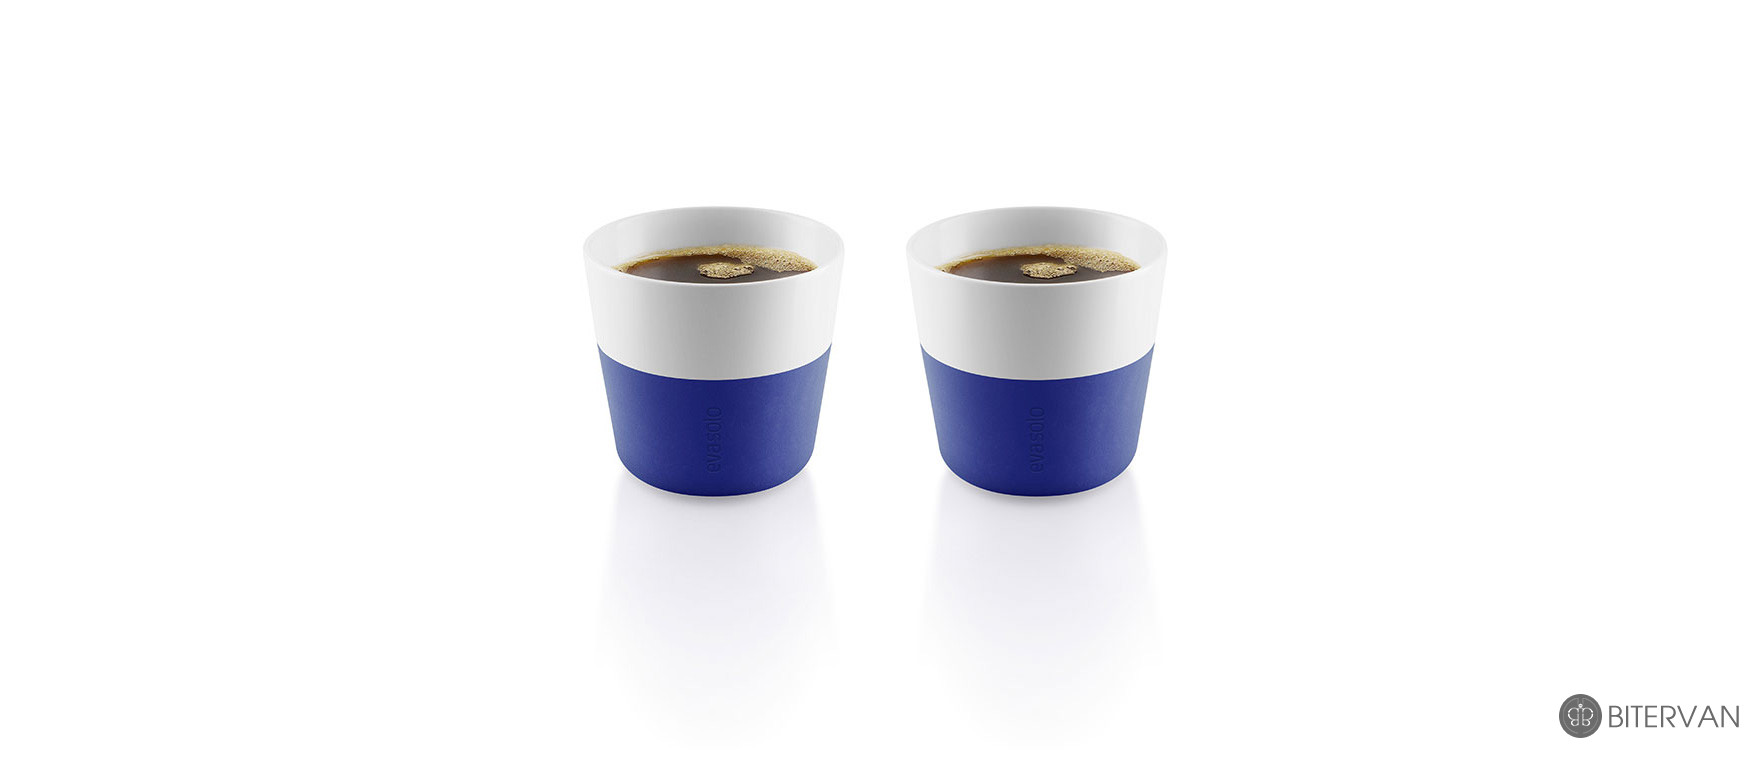 eva solo, lungo tumbler, 2 pcs, electric blue, 230 ml